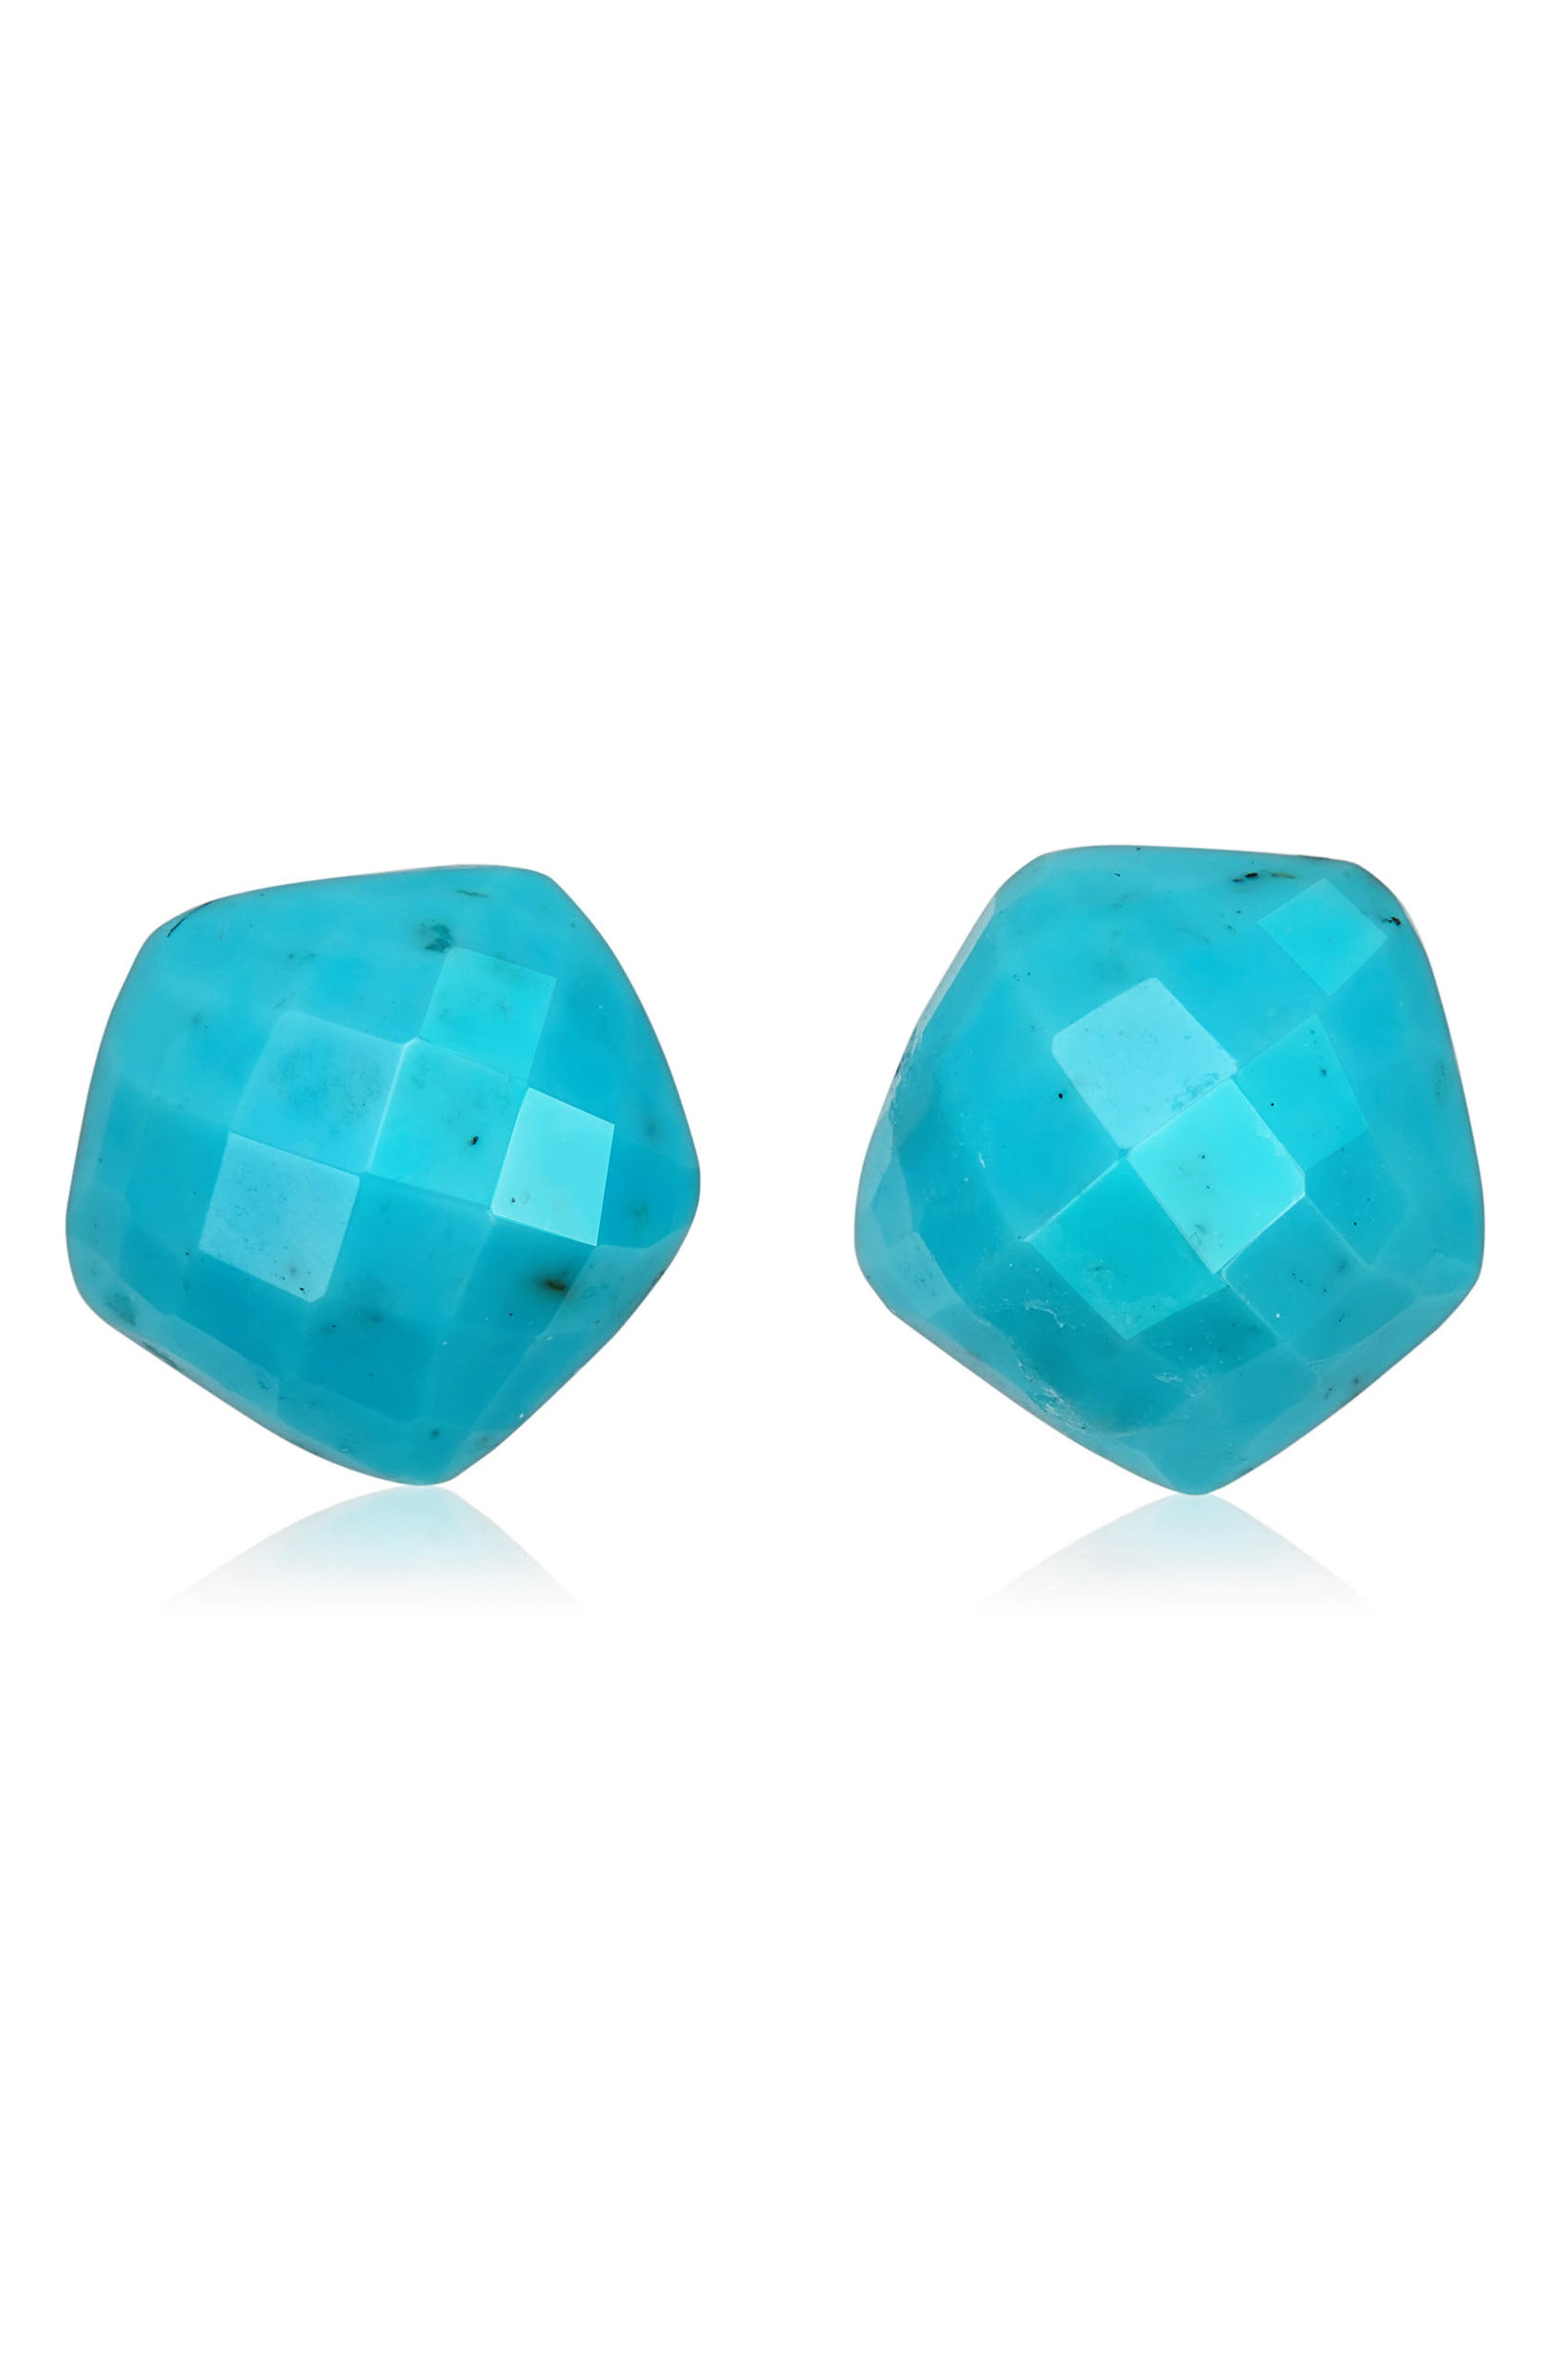 Nura Nugget Stud Earrings,                         Main,                         color, TURQUOISE